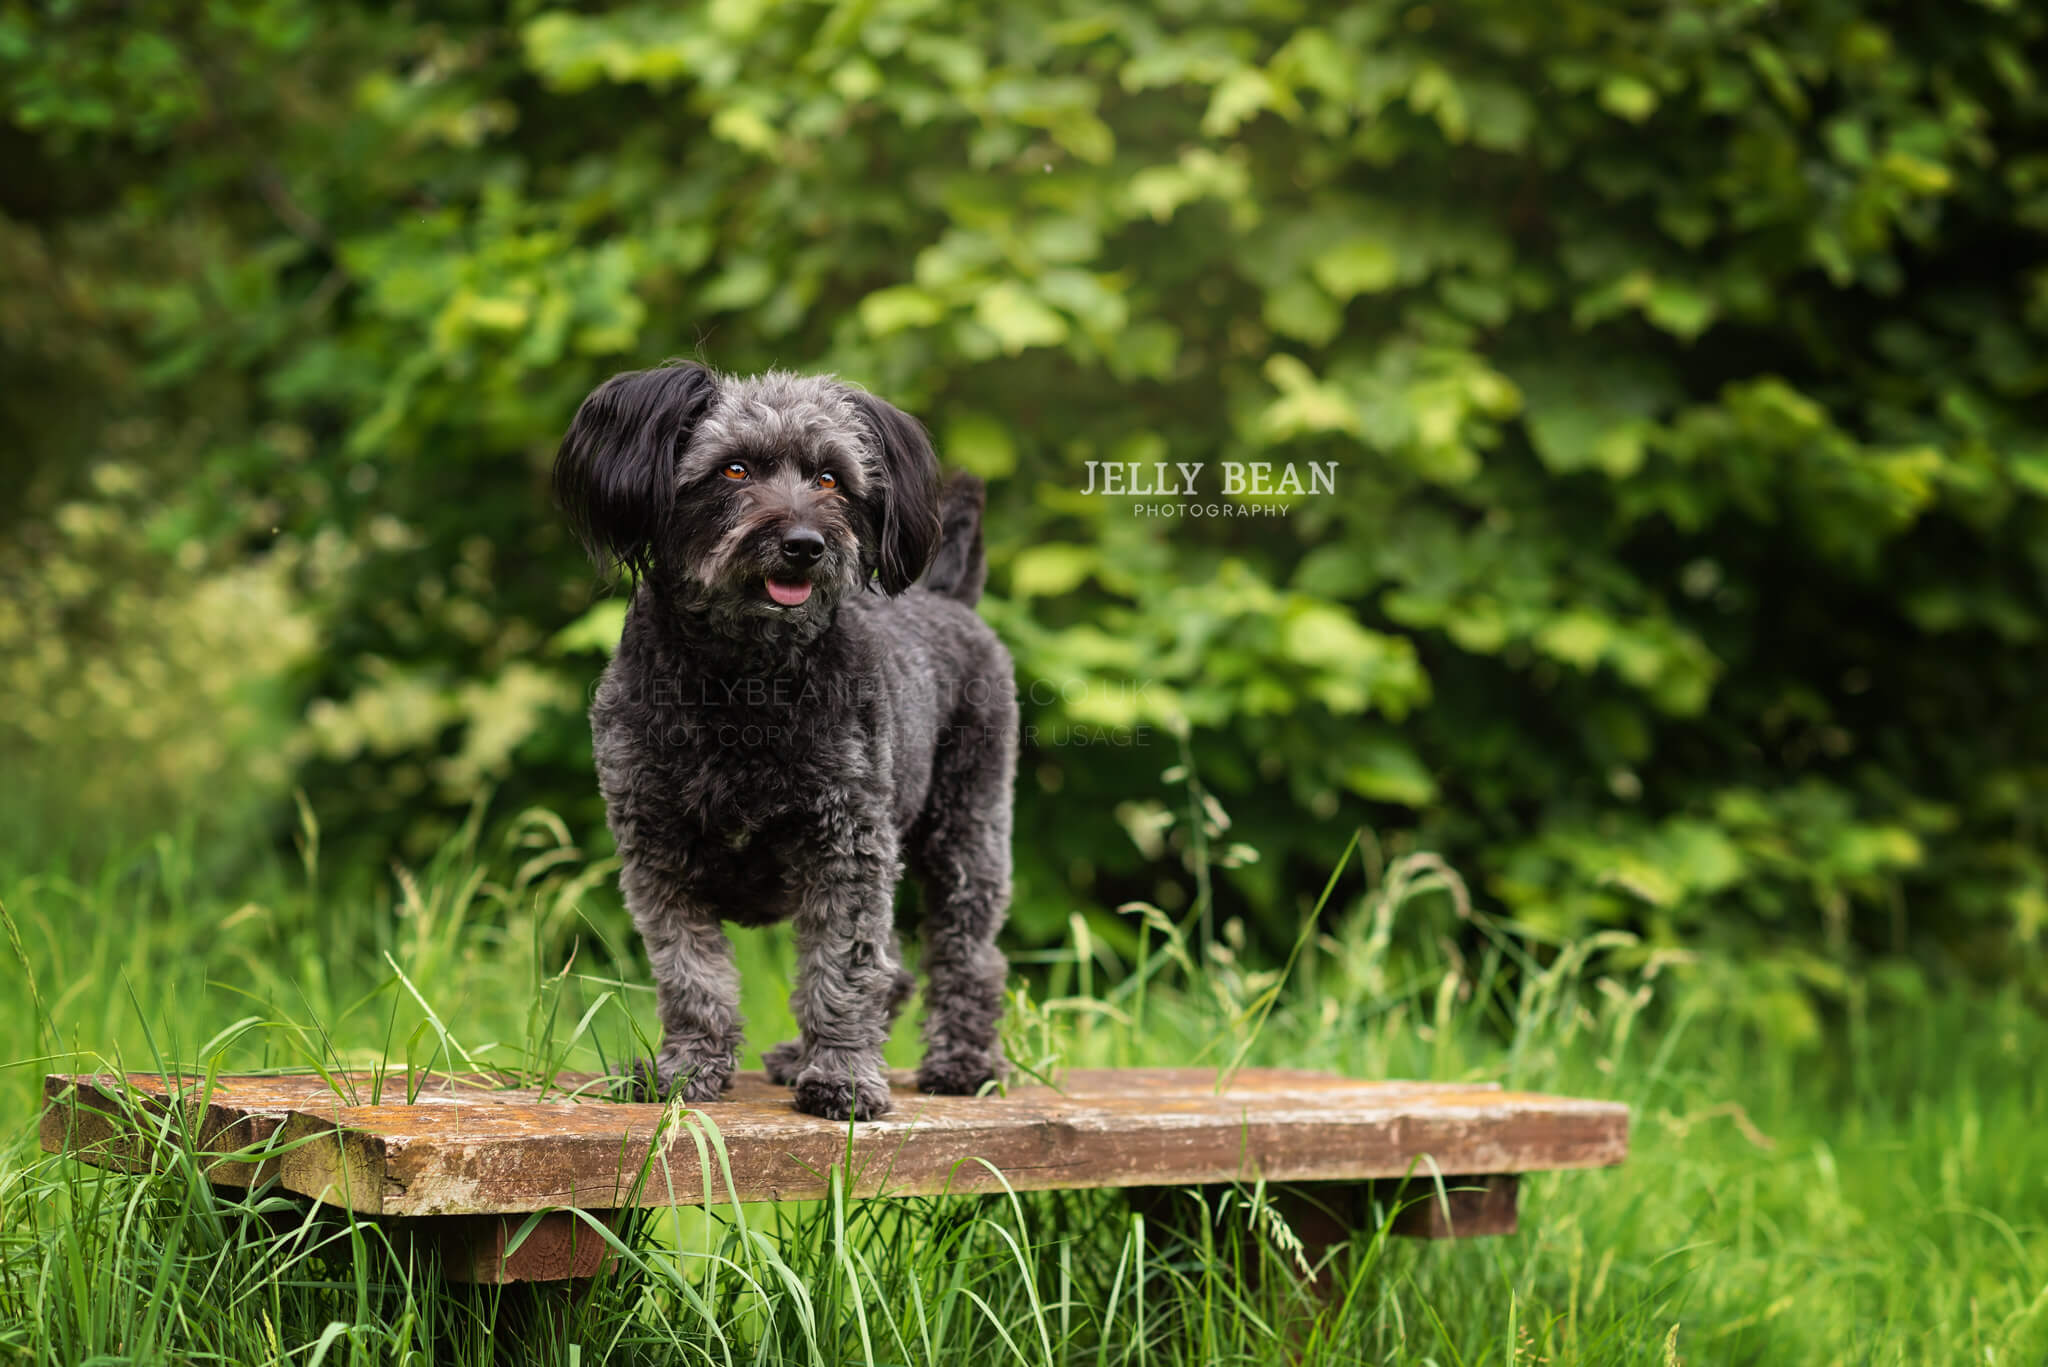 little dog standing on bench